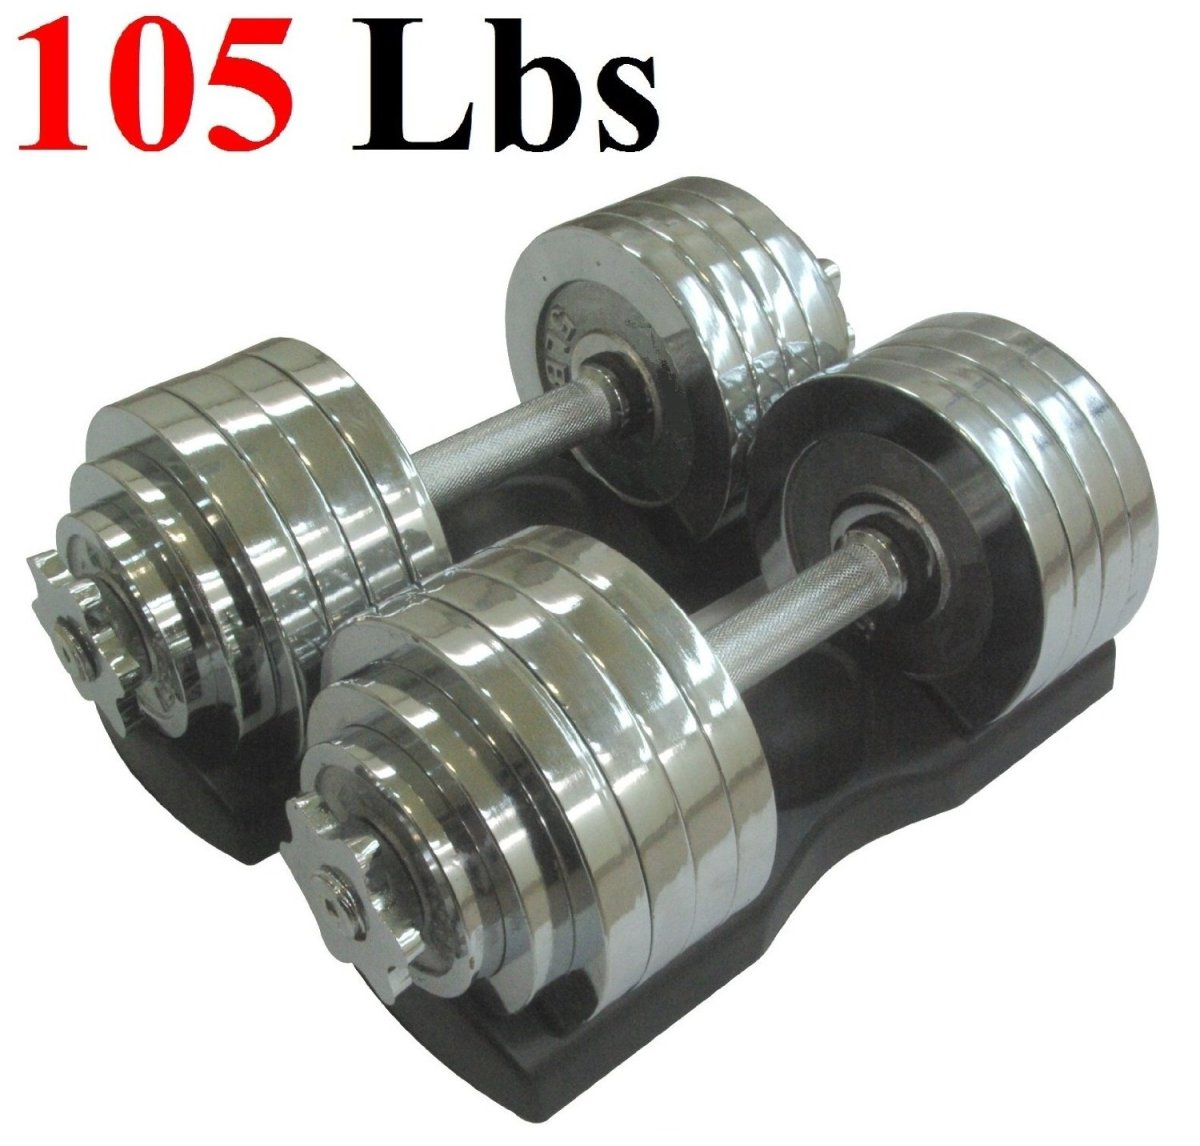 ONE PAIR OF ADJUSTABLE DUMBBELLS CHROME PLATED METAL